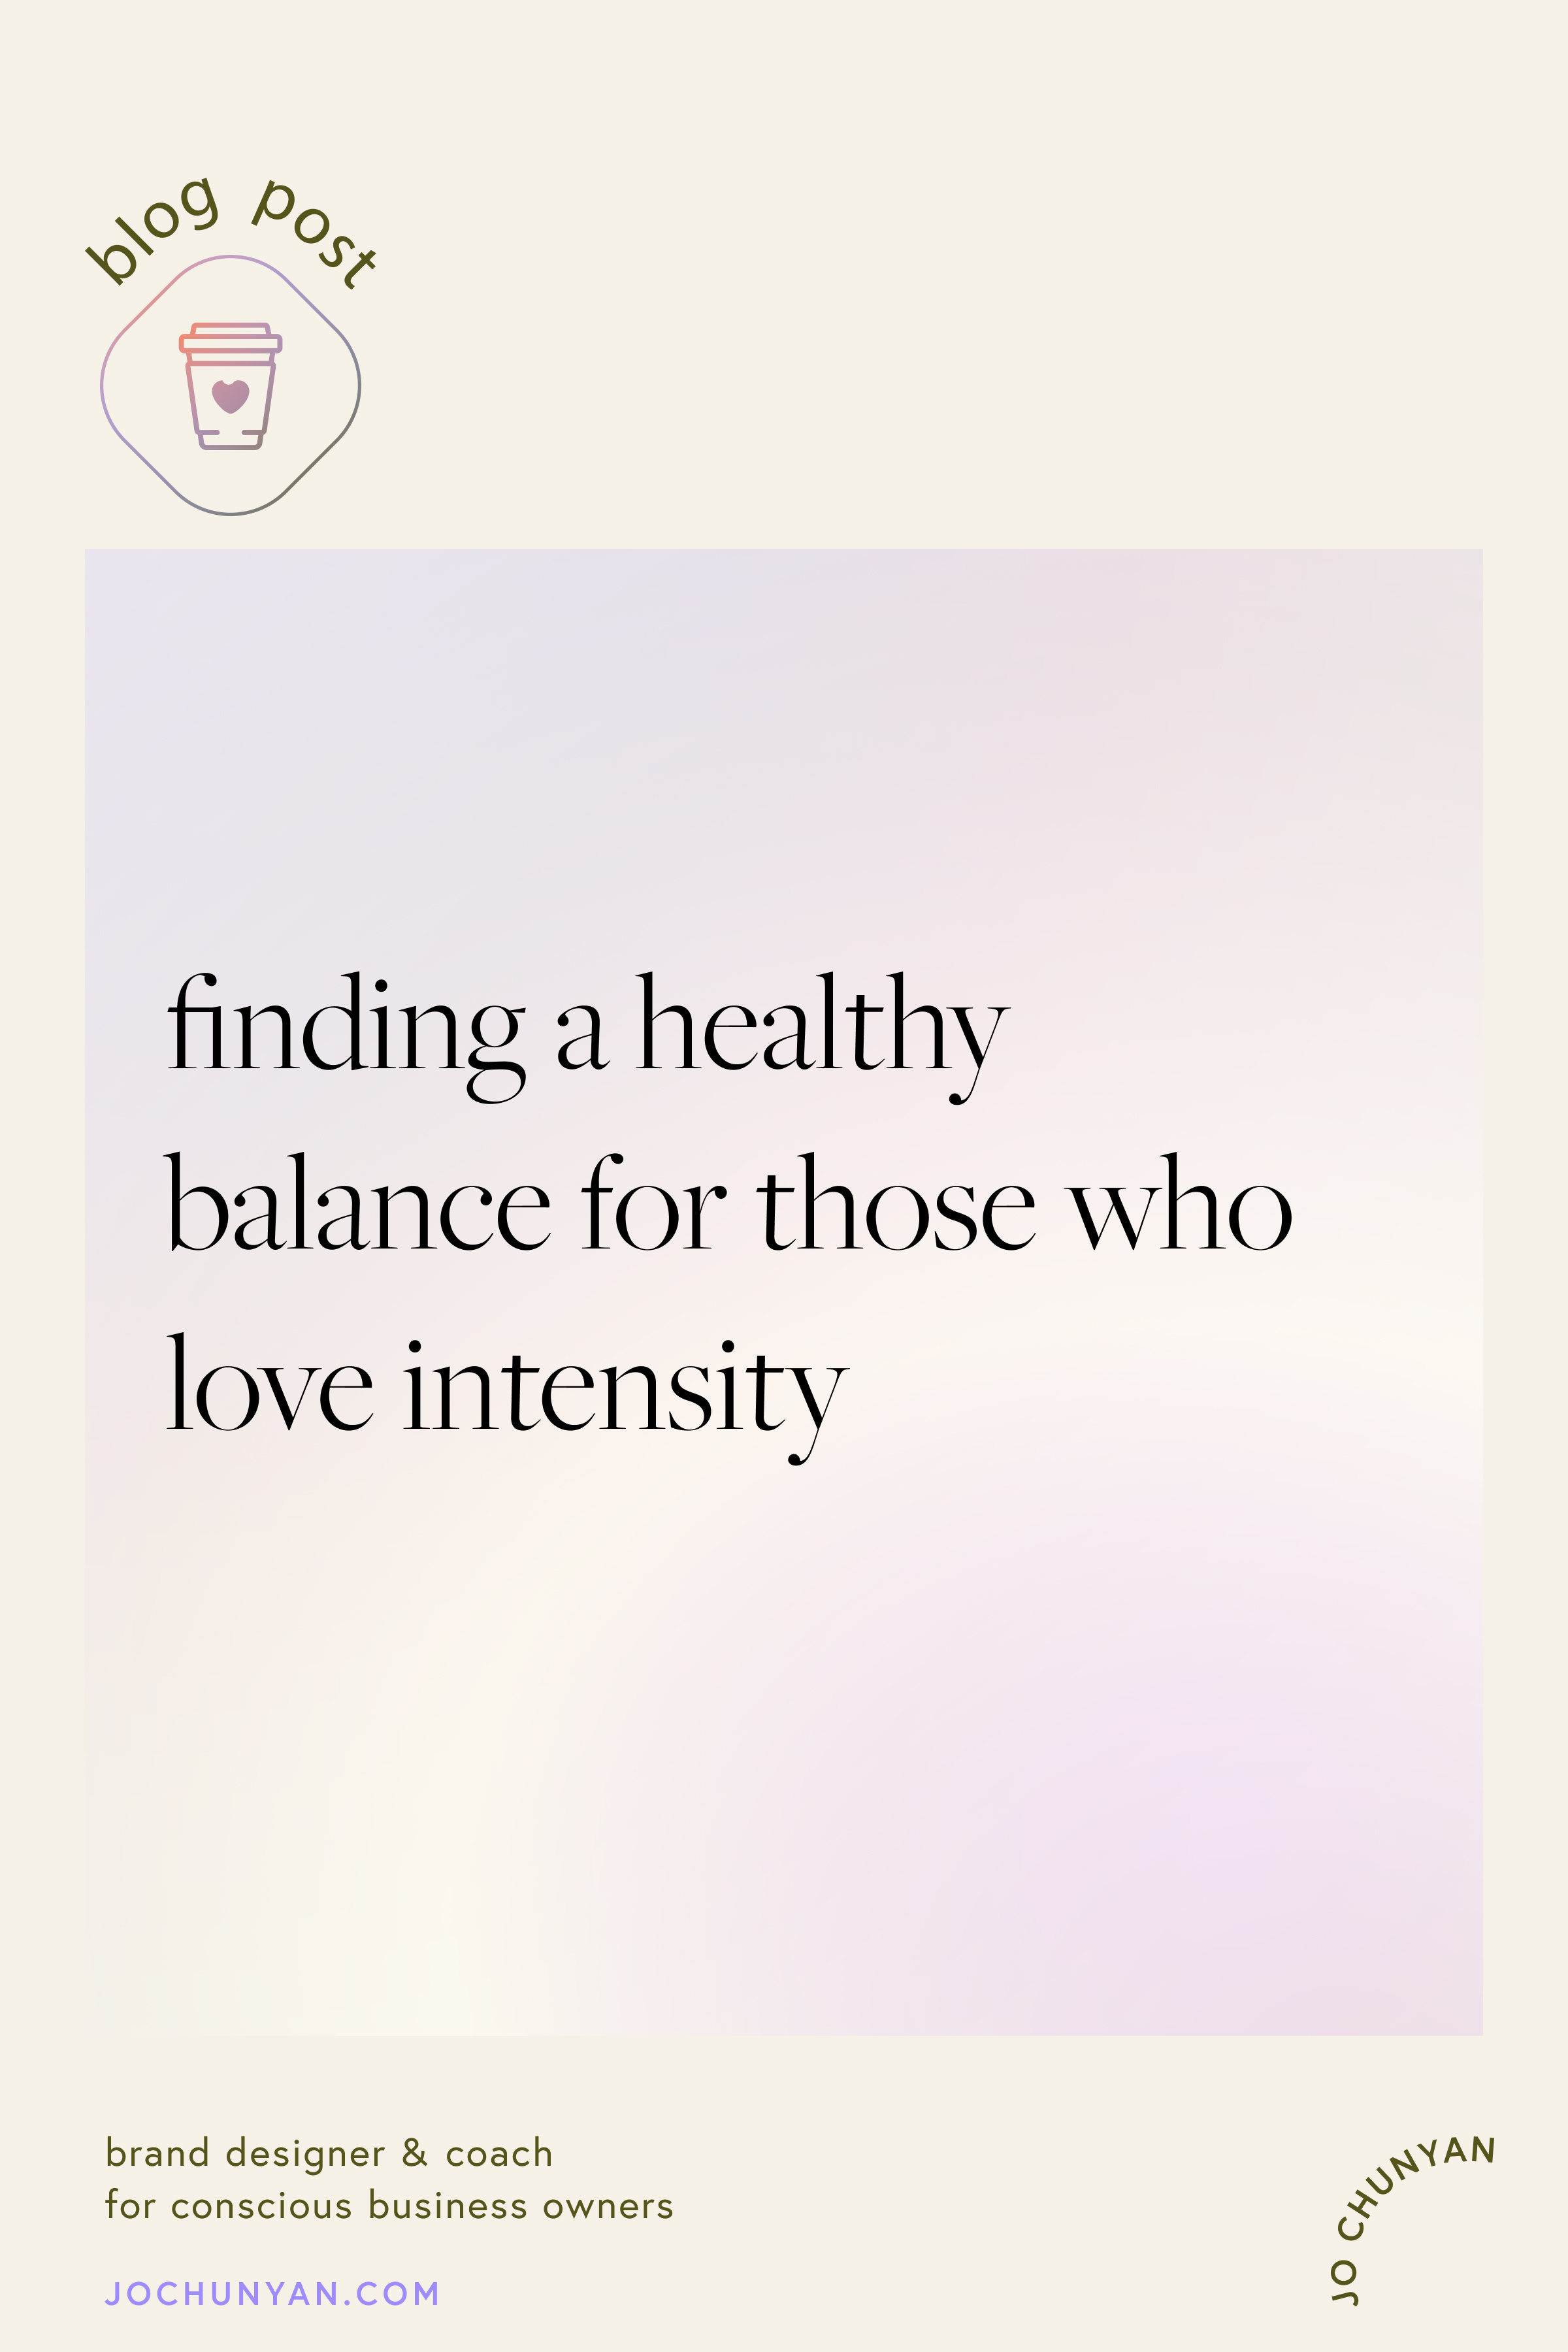 Finding a healthy balance for those who love intensity